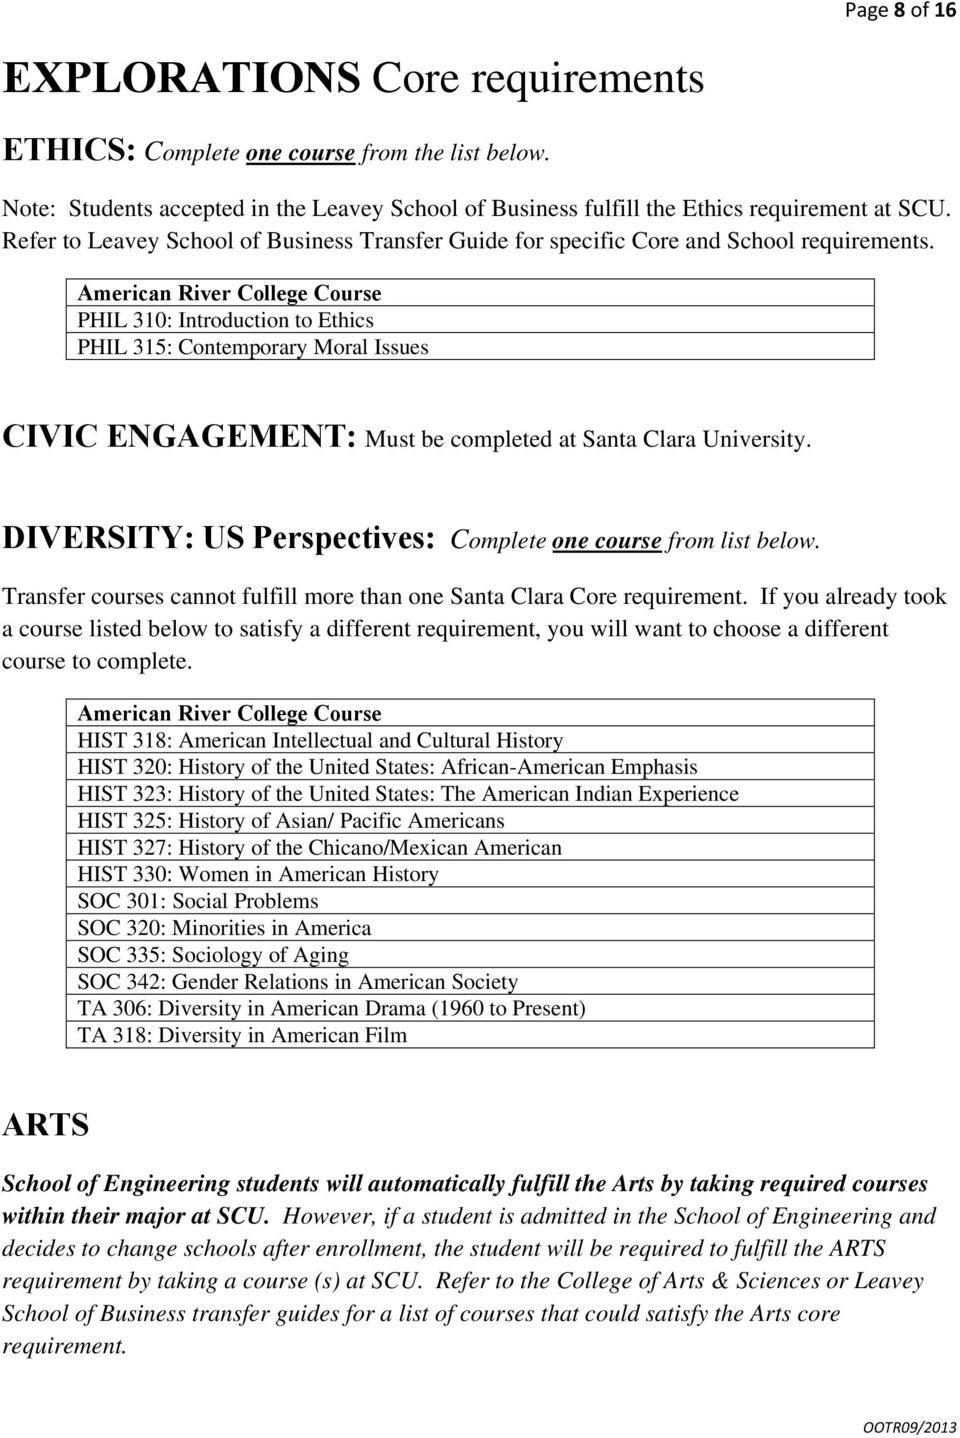 PHIL 310: Introduction to Ethics PHIL 315: Contemporary Moral Issues CIVIC ENGAGEMENT: Must be completed at Santa Clara University. DIVERSITY: US Perspectives: Complete one course from list below.